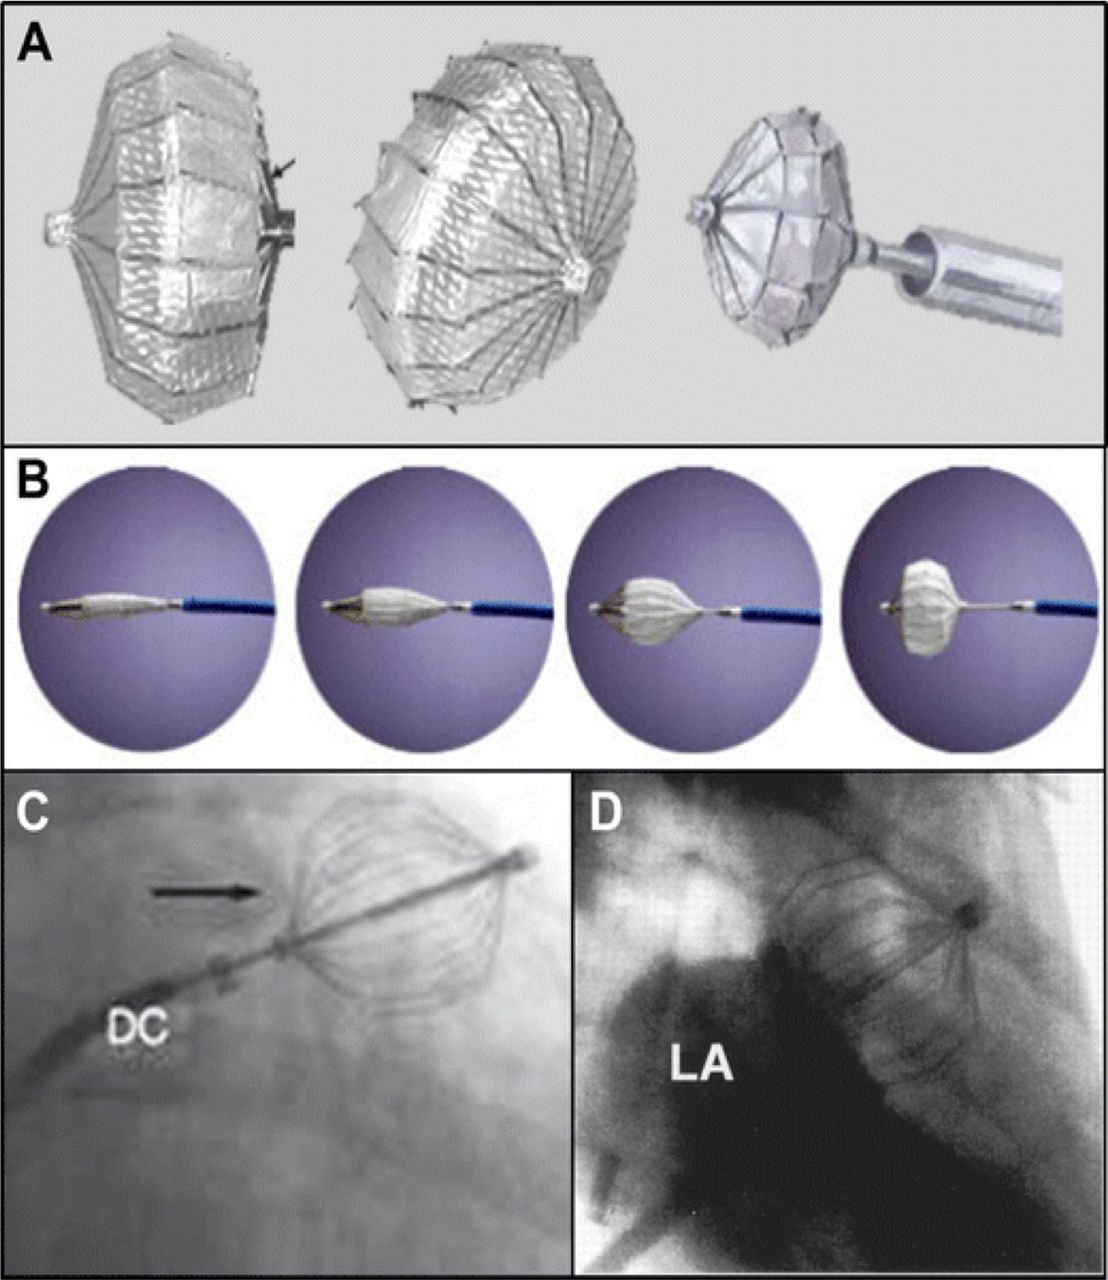 percutaneous left atrial appendage occlusion for stroke prevention